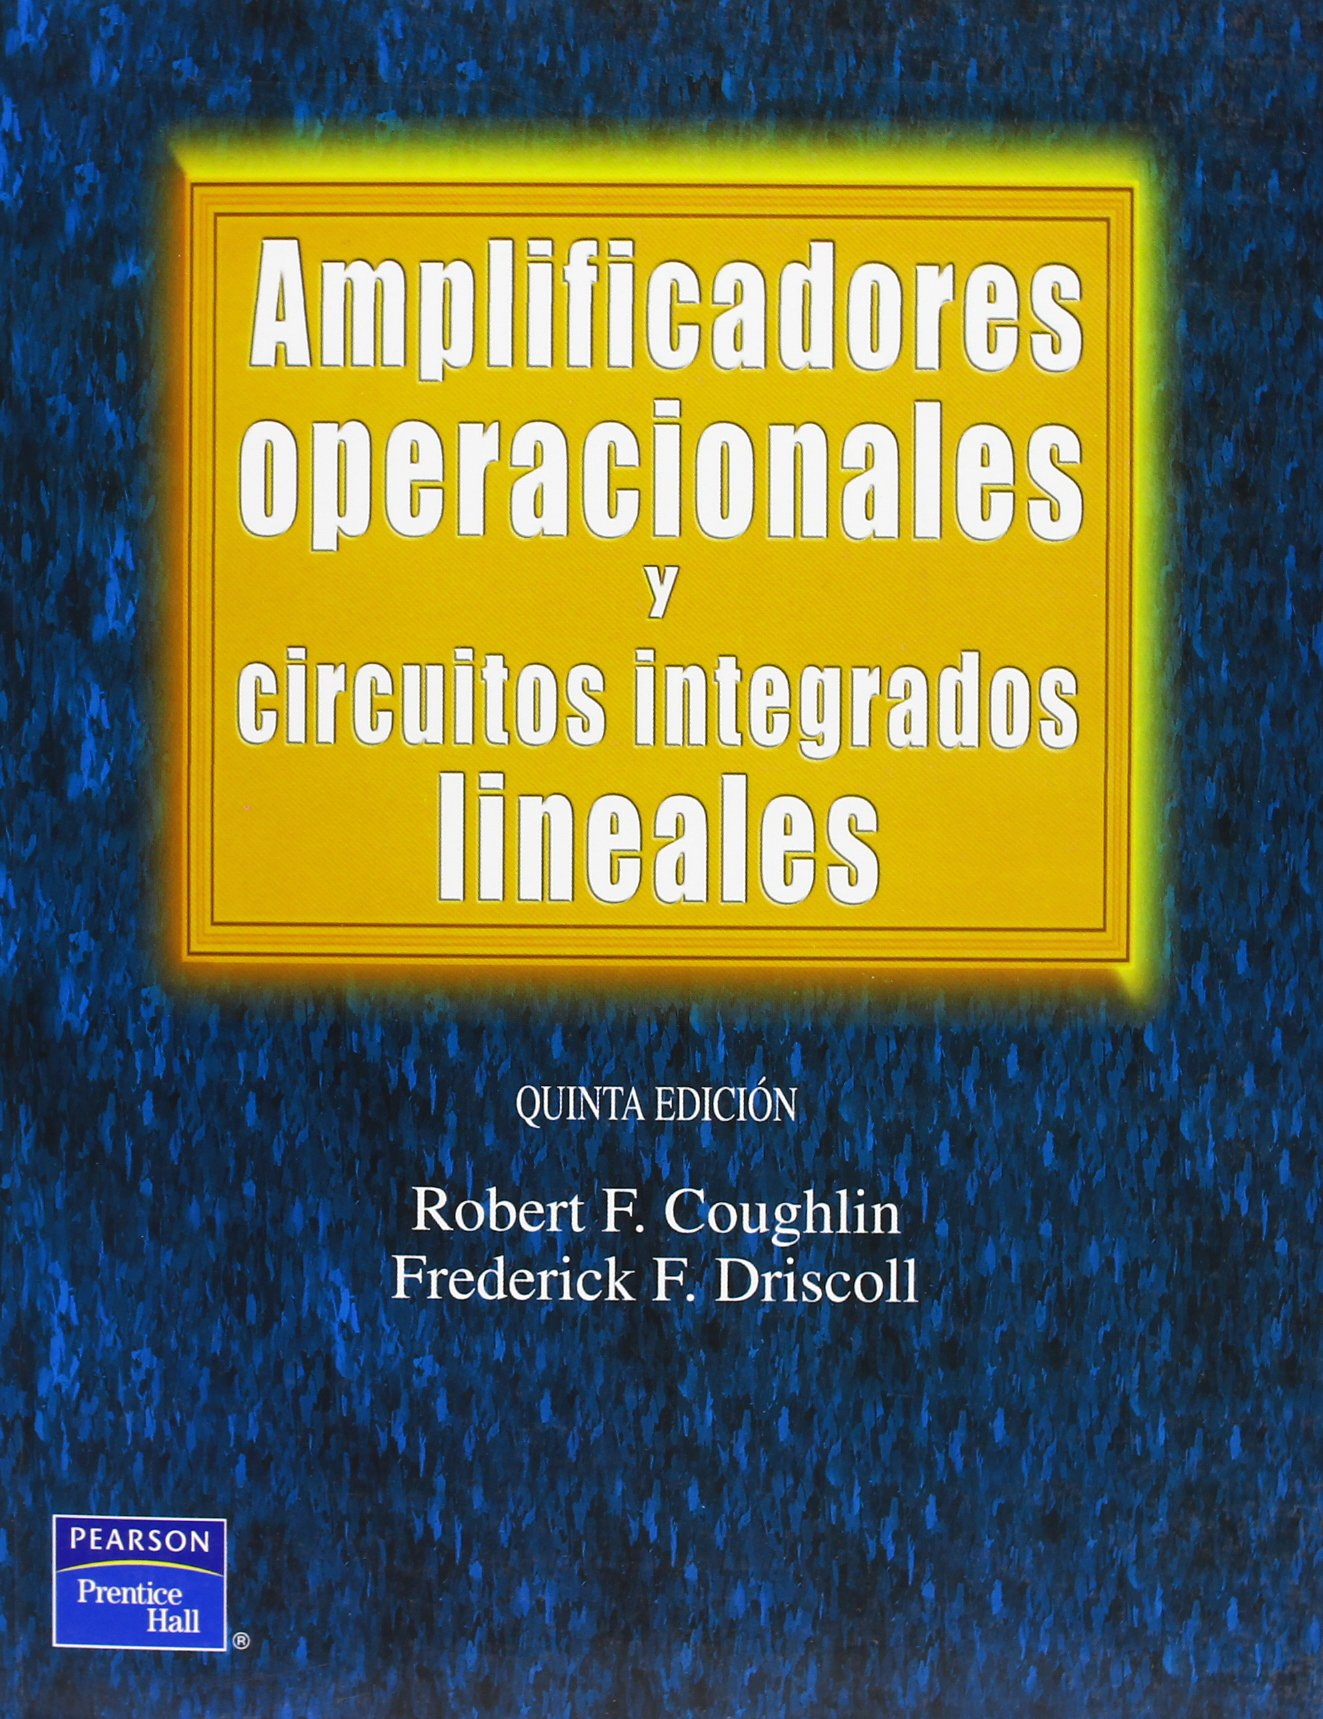 Amplificadores Operacionales y Circuitos Integrado (Spanish Edition): Robert F. Coughlin, Frederick F. Driscoll: 9789701702673: Amazon.com: Books